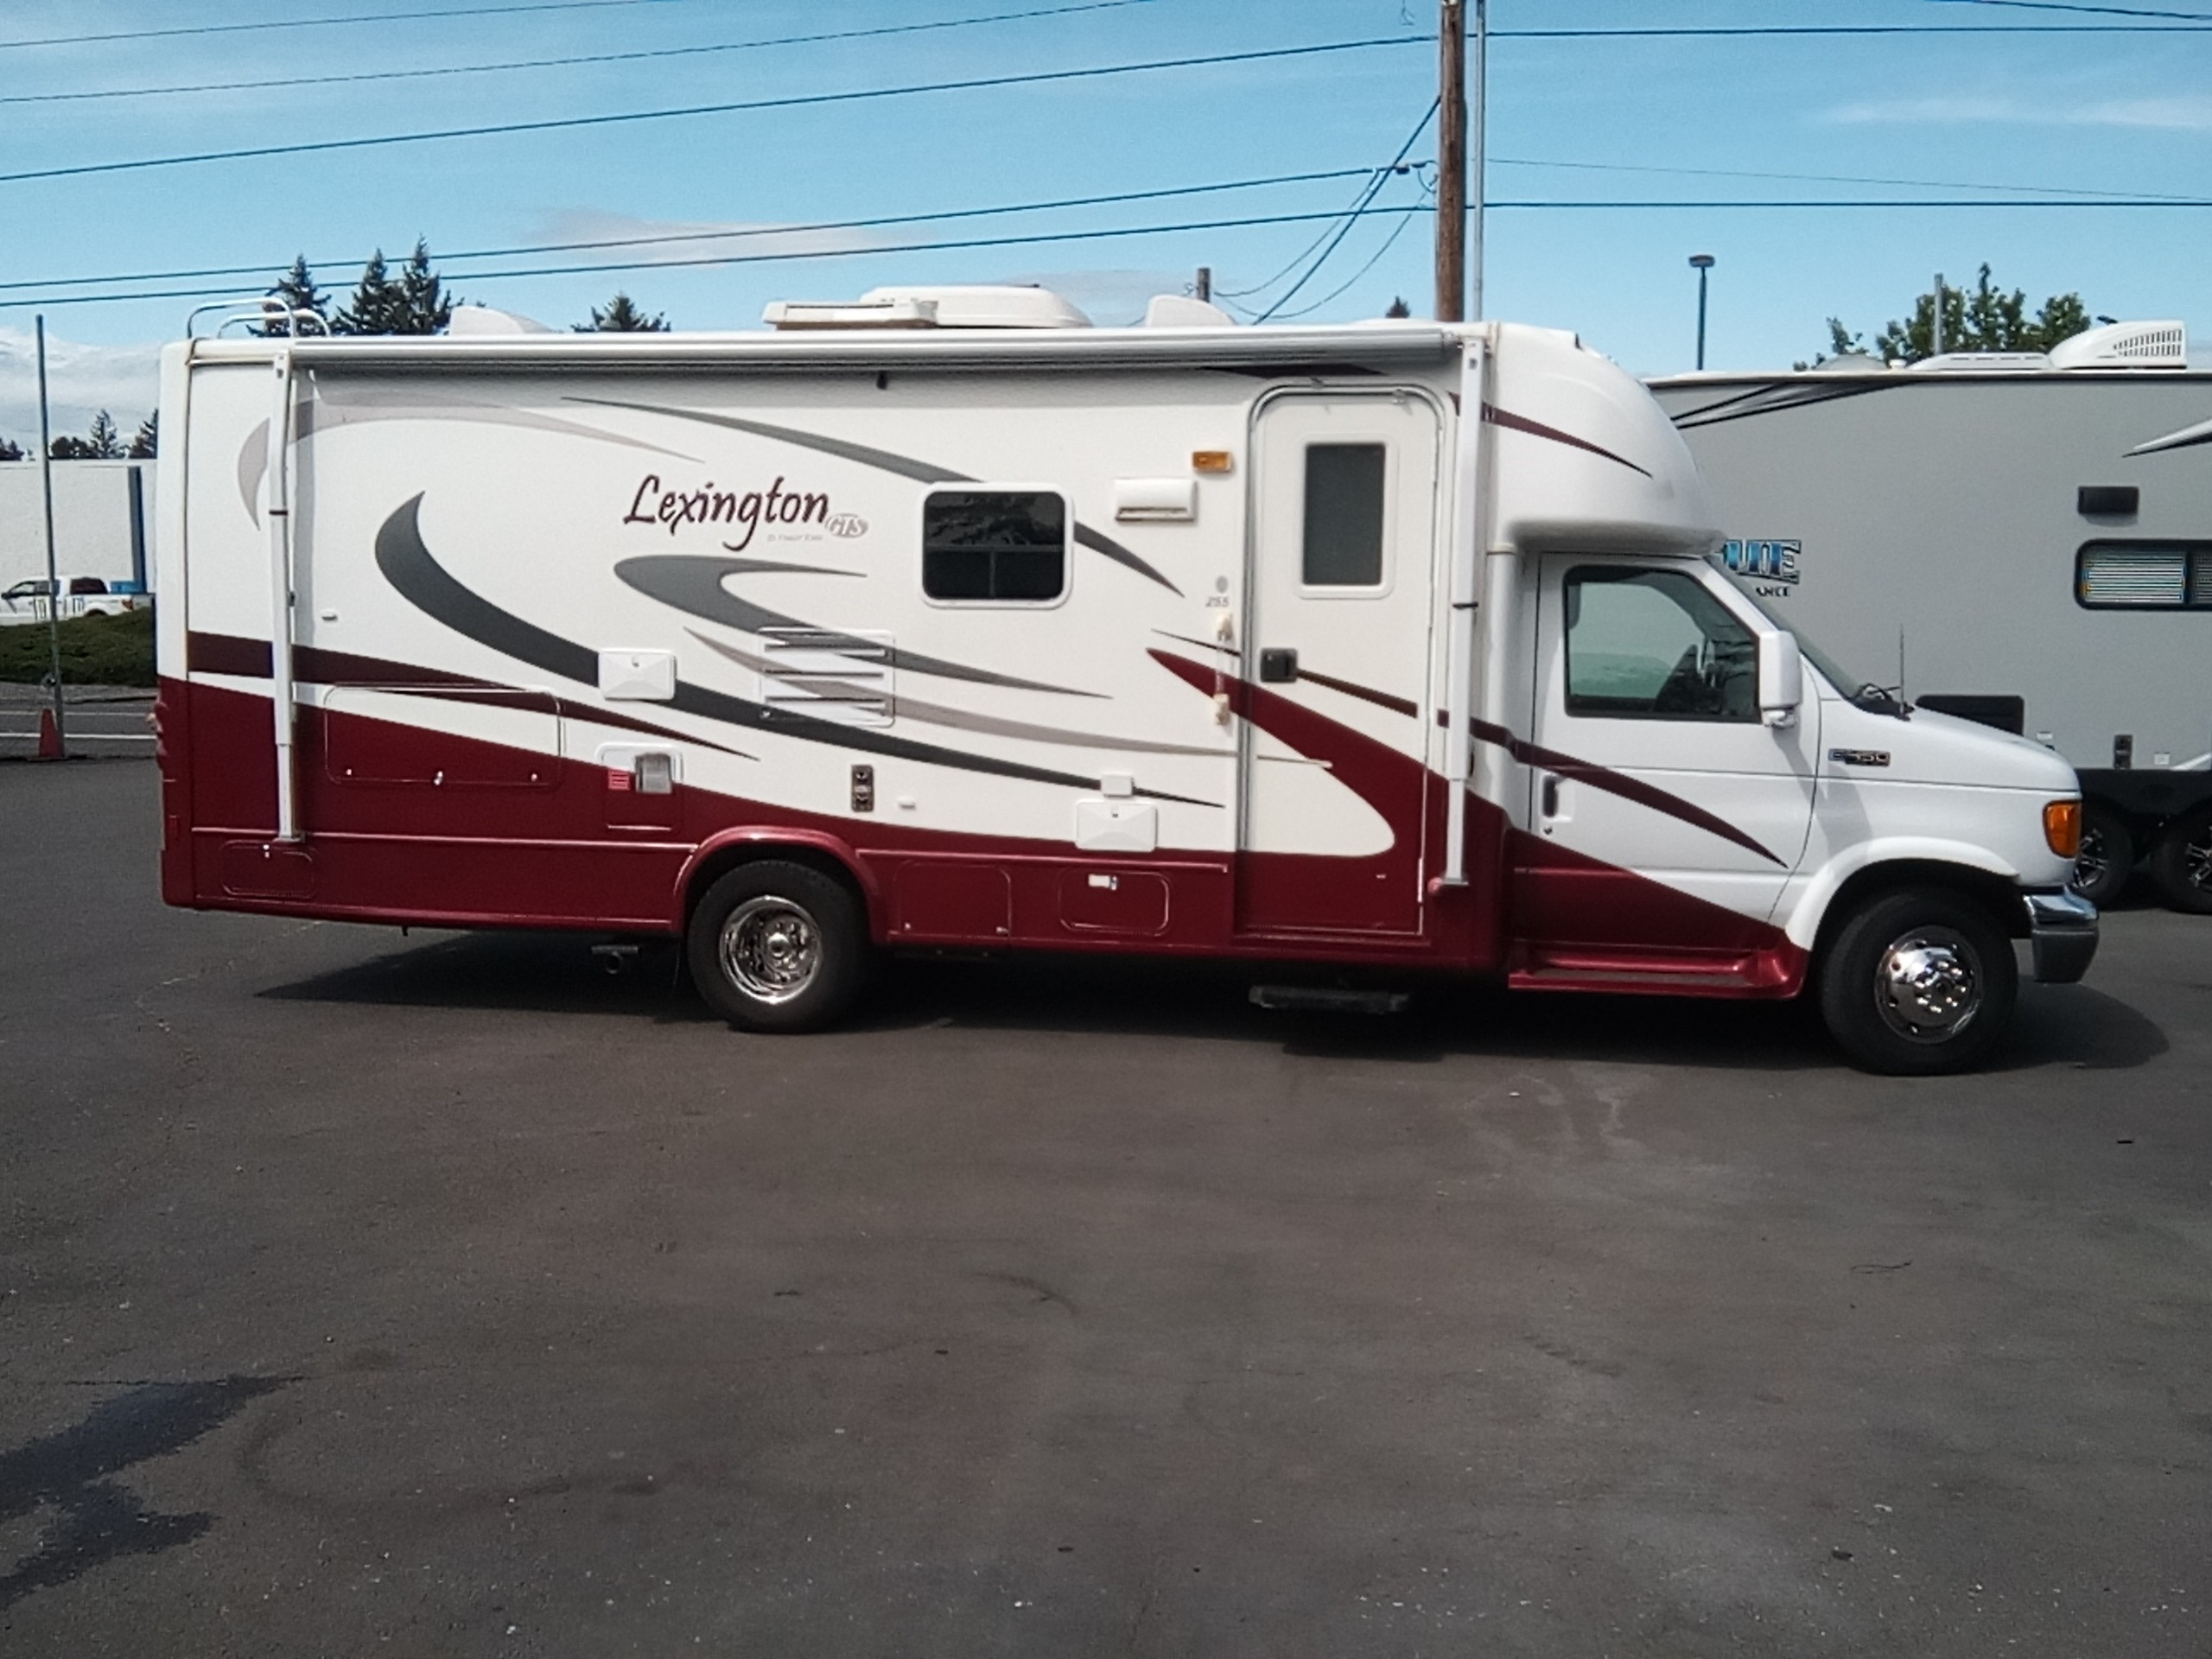 Used, 2005, Forest River, LEXINGTON, RV - Class C